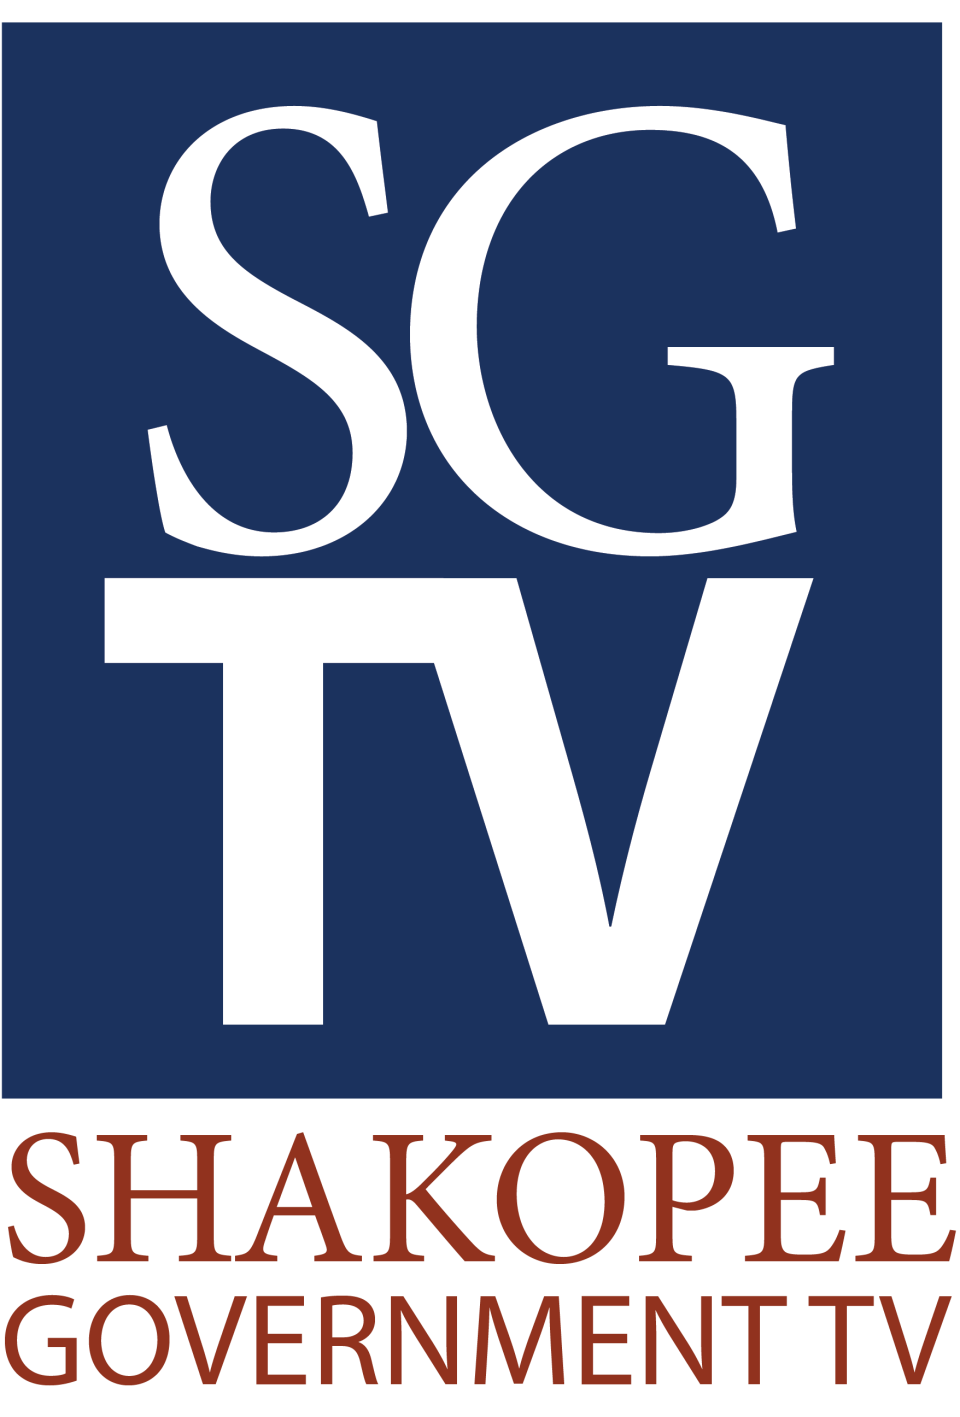 Shakopee Government TV logo